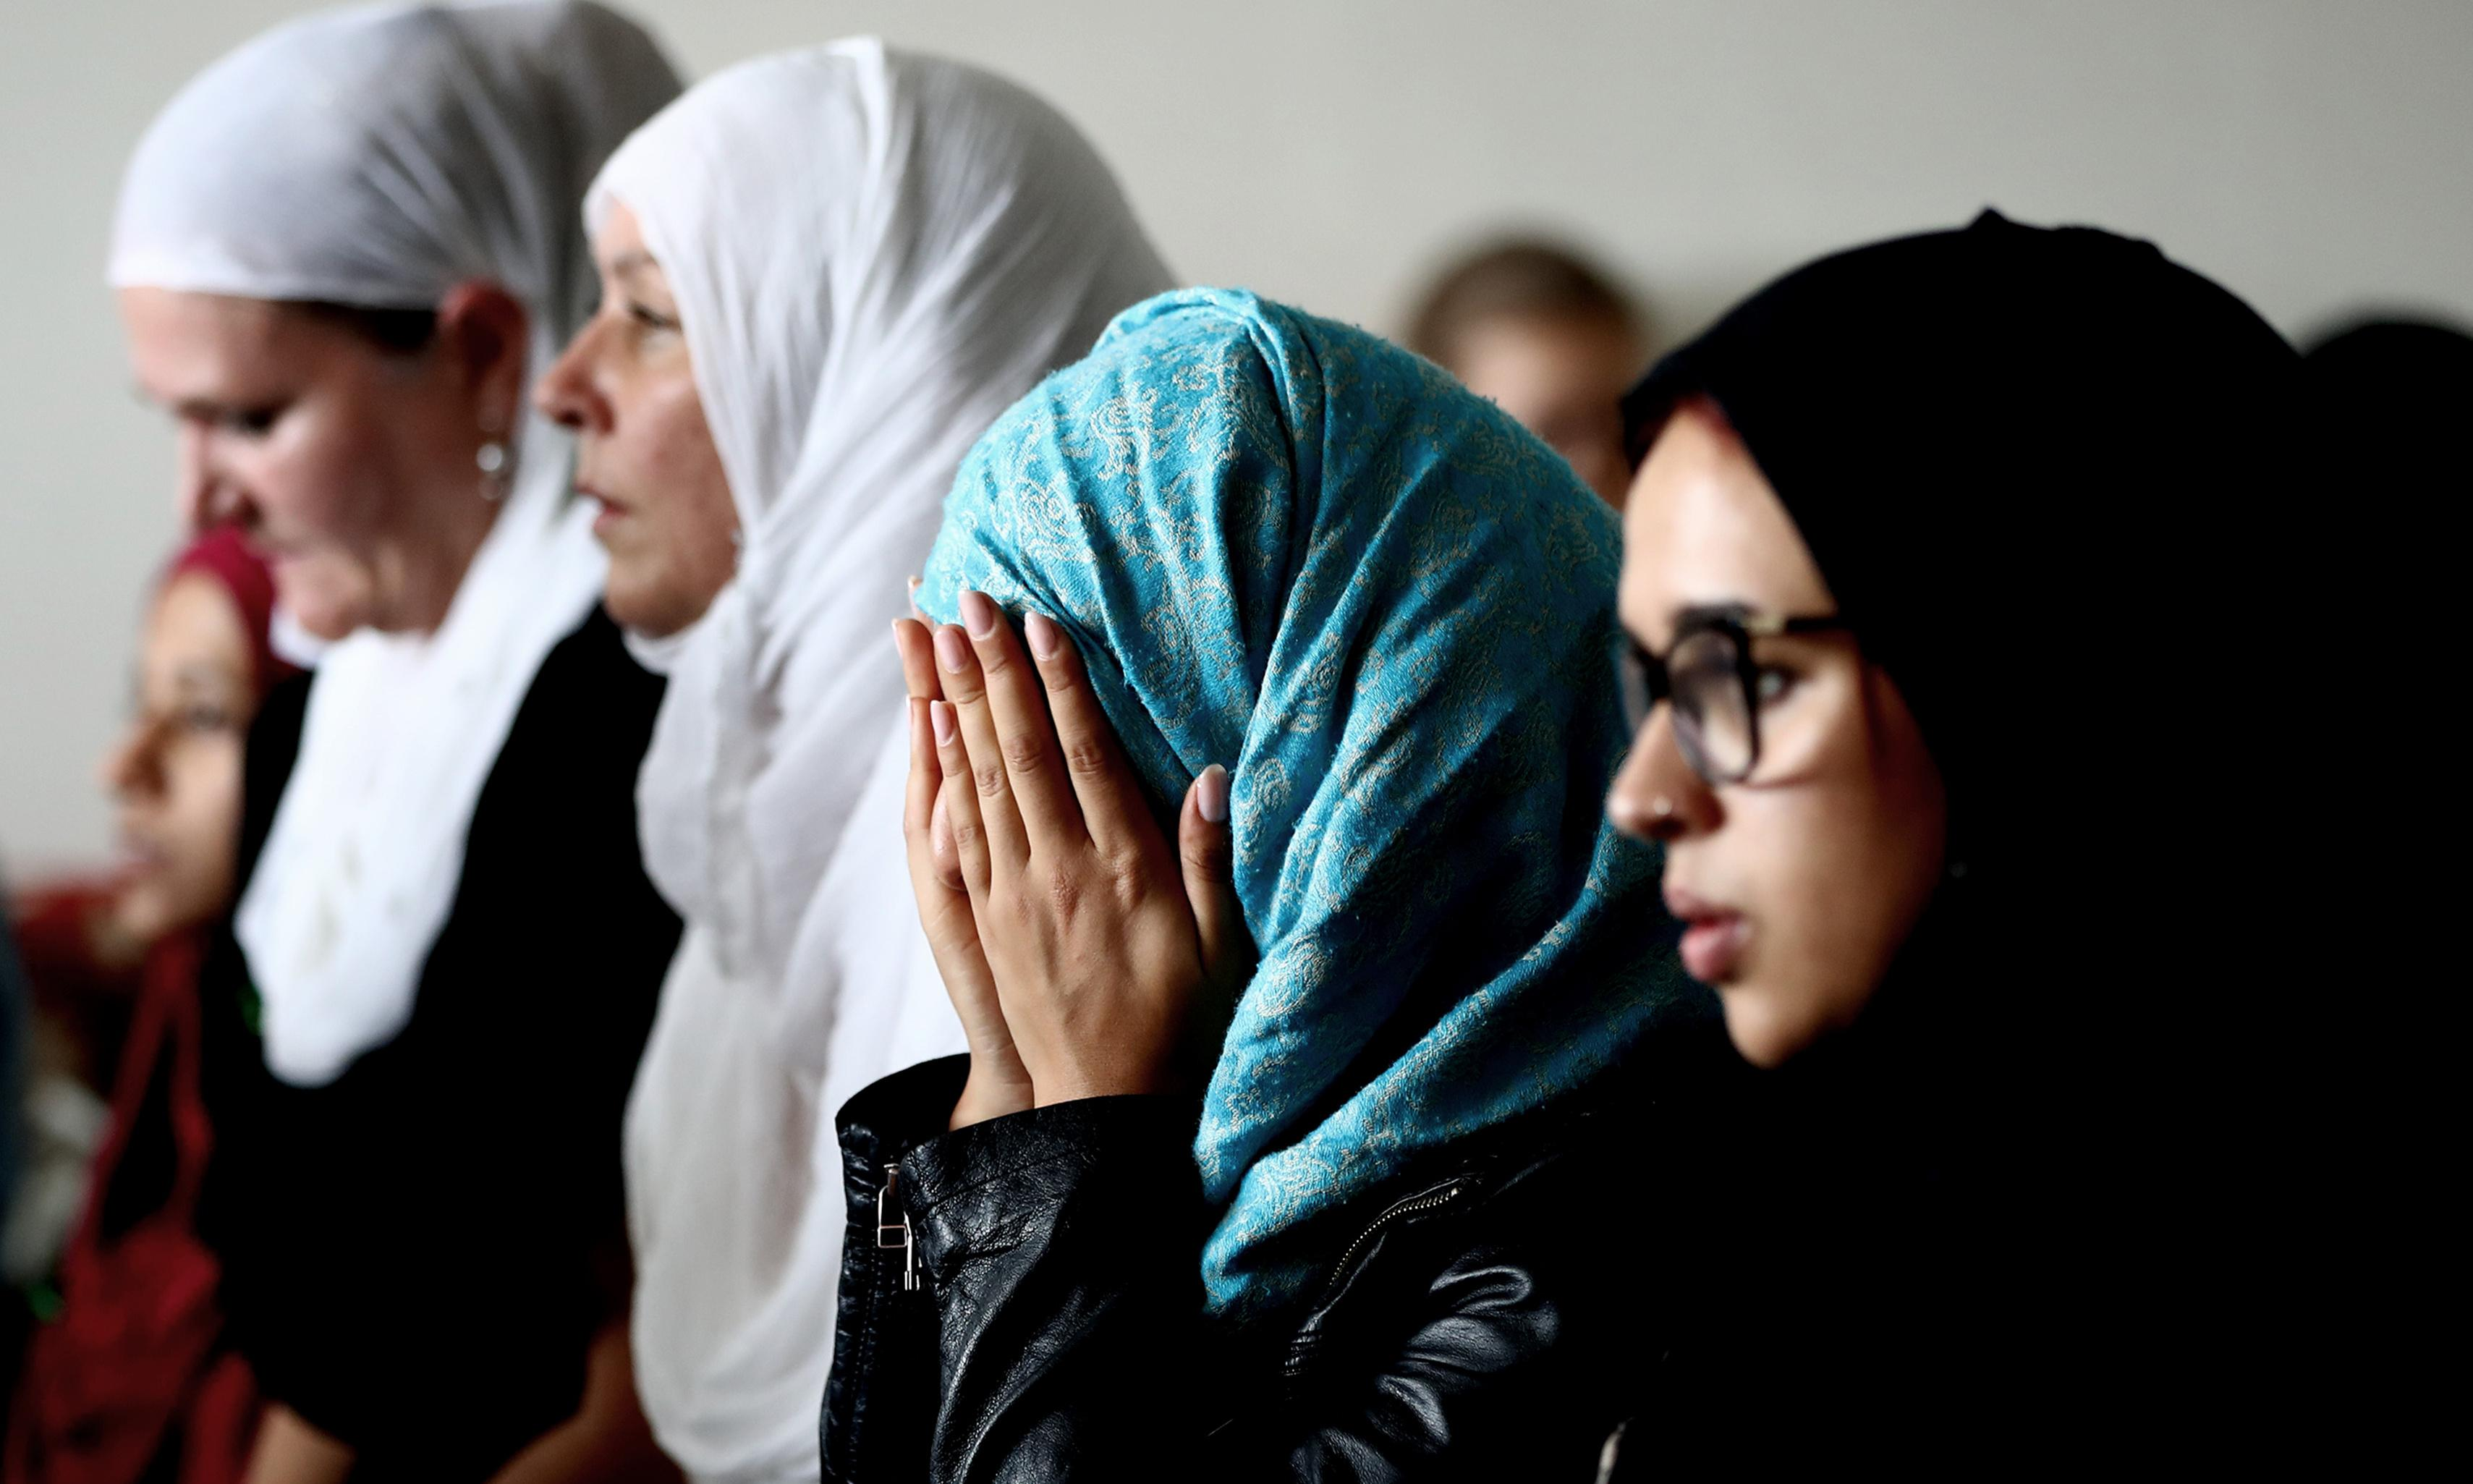 'The nation is behind us': New Zealand shares pain of Christchurch Muslims